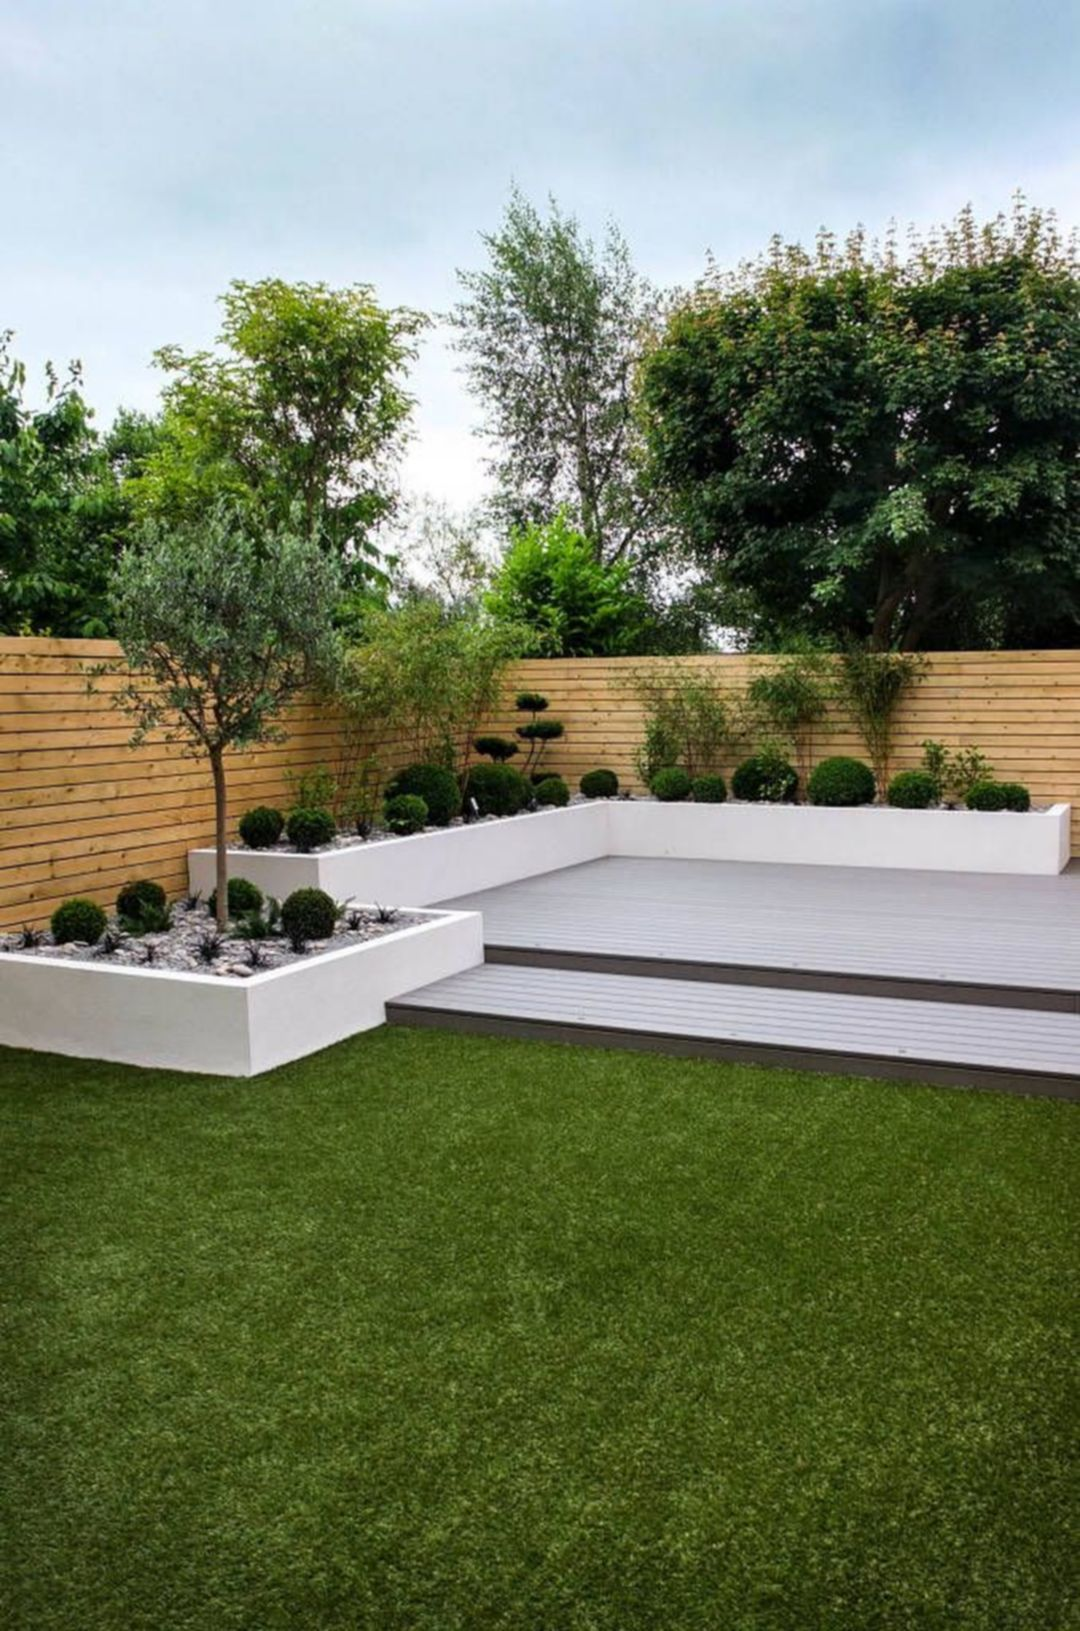 most beautiful garden design ideas for your home yard plants